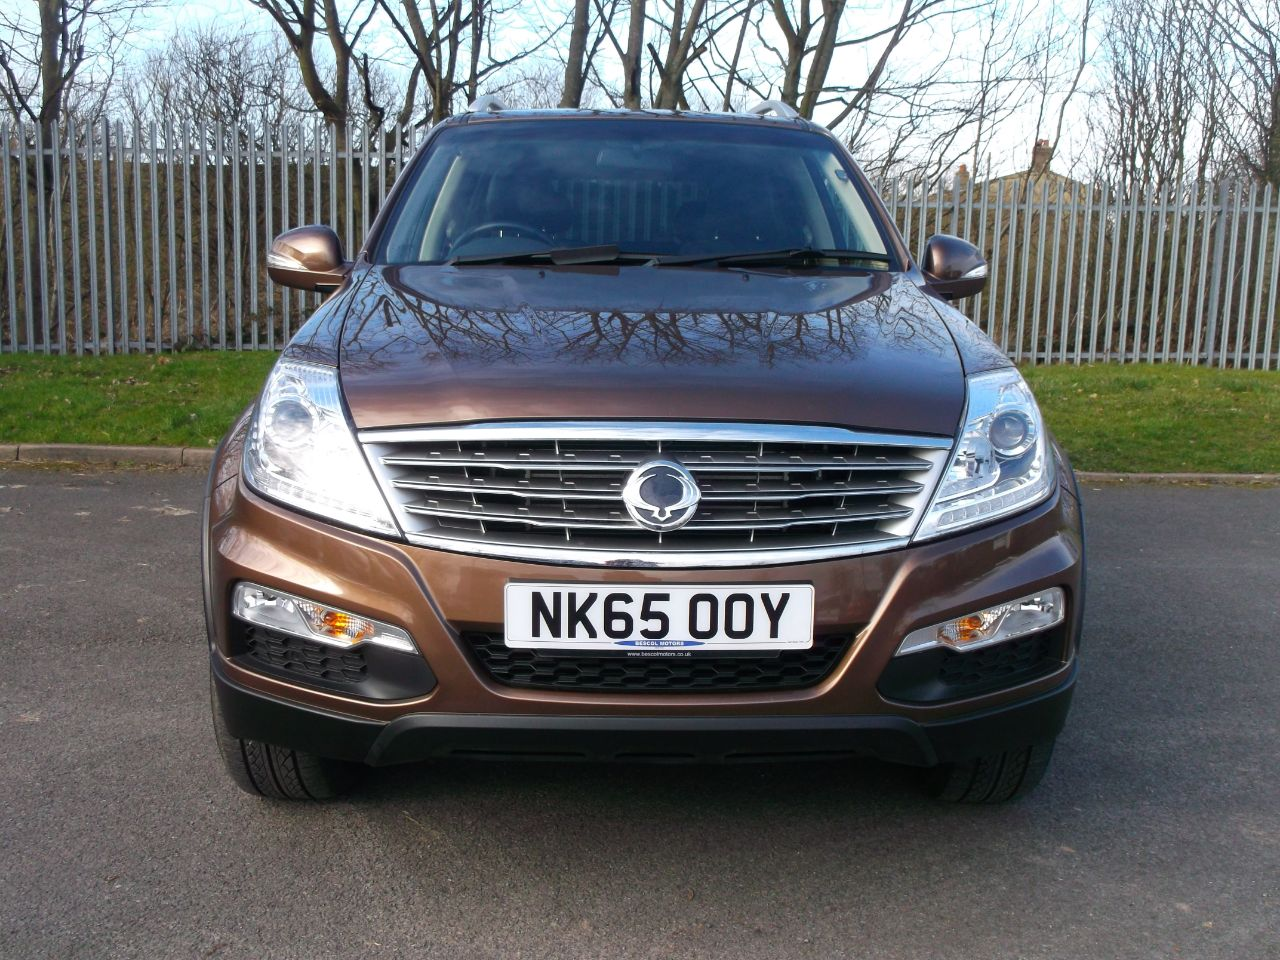 second hand ssangyong rexton w rexton elx auto for sale in consett durham ssangyong gb. Black Bedroom Furniture Sets. Home Design Ideas